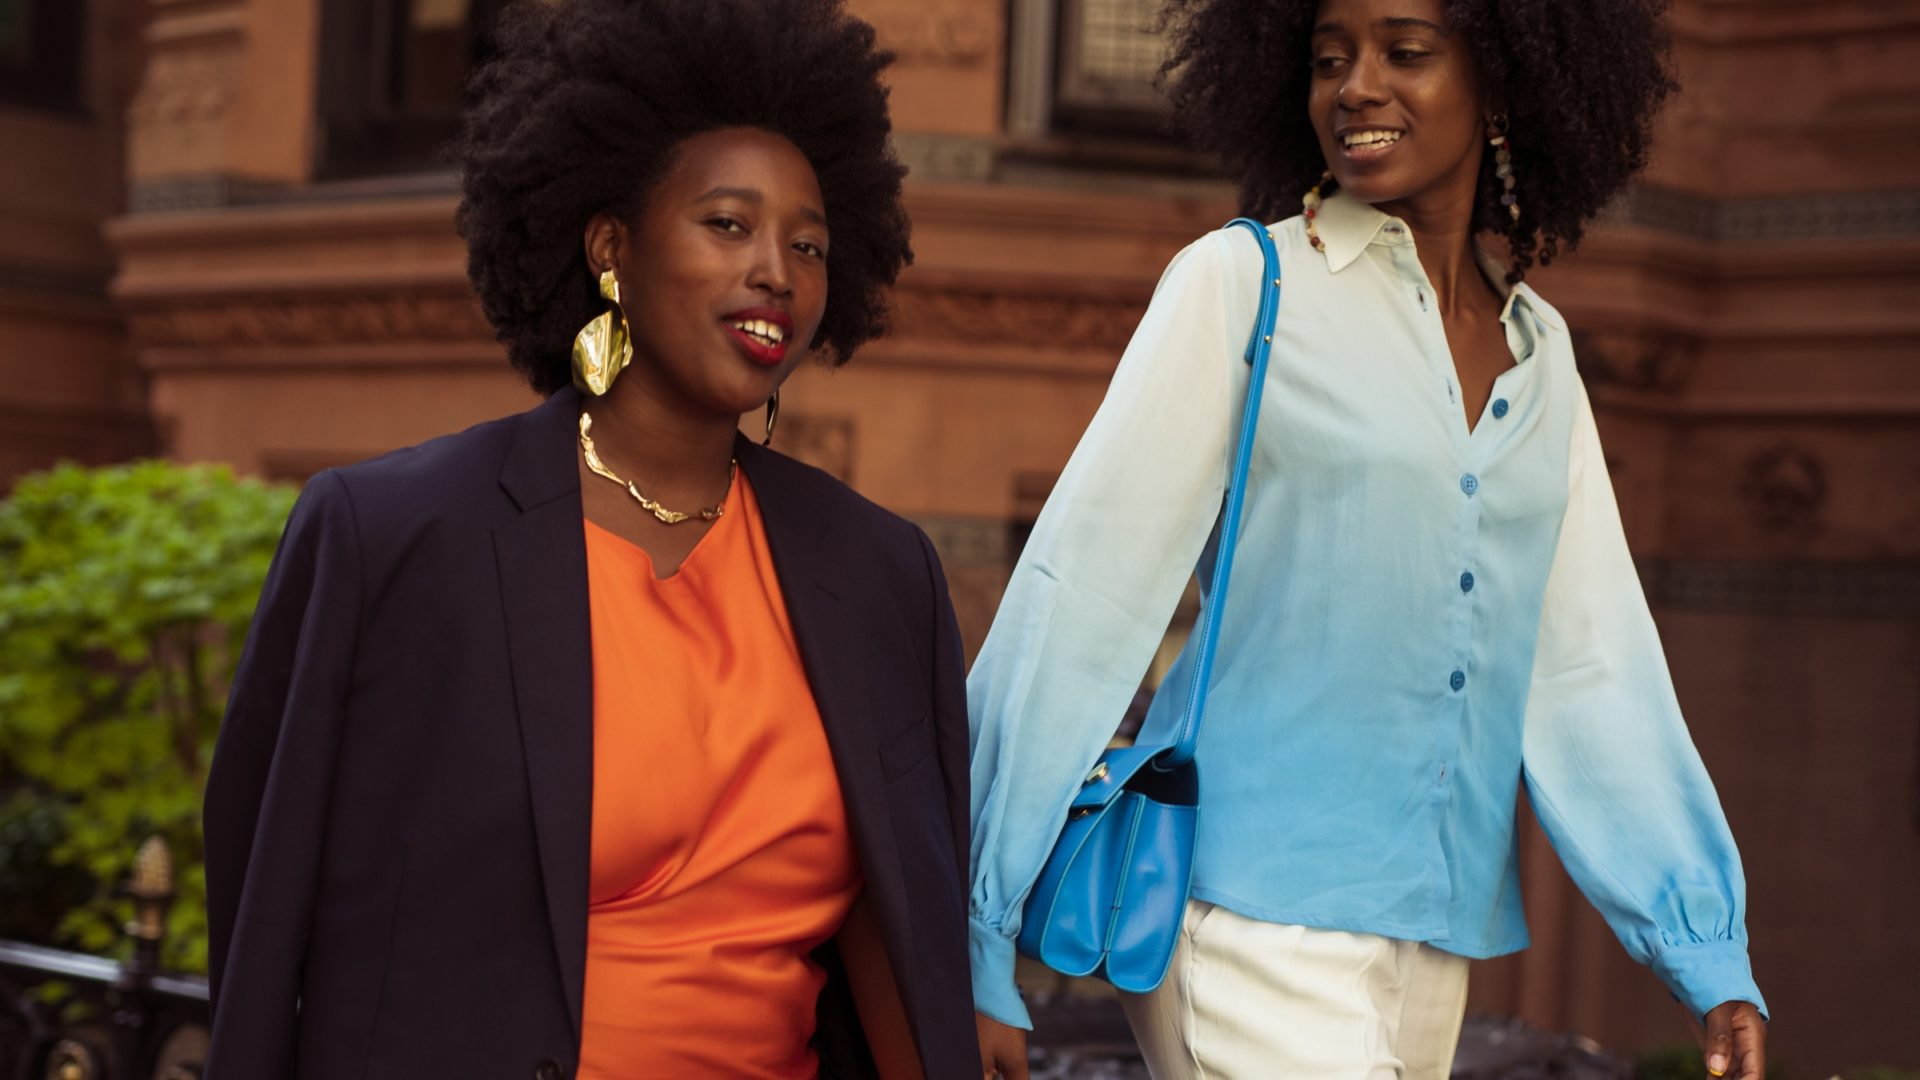 The Best New York Fashion Week Spring/Summer 2020 Street Style